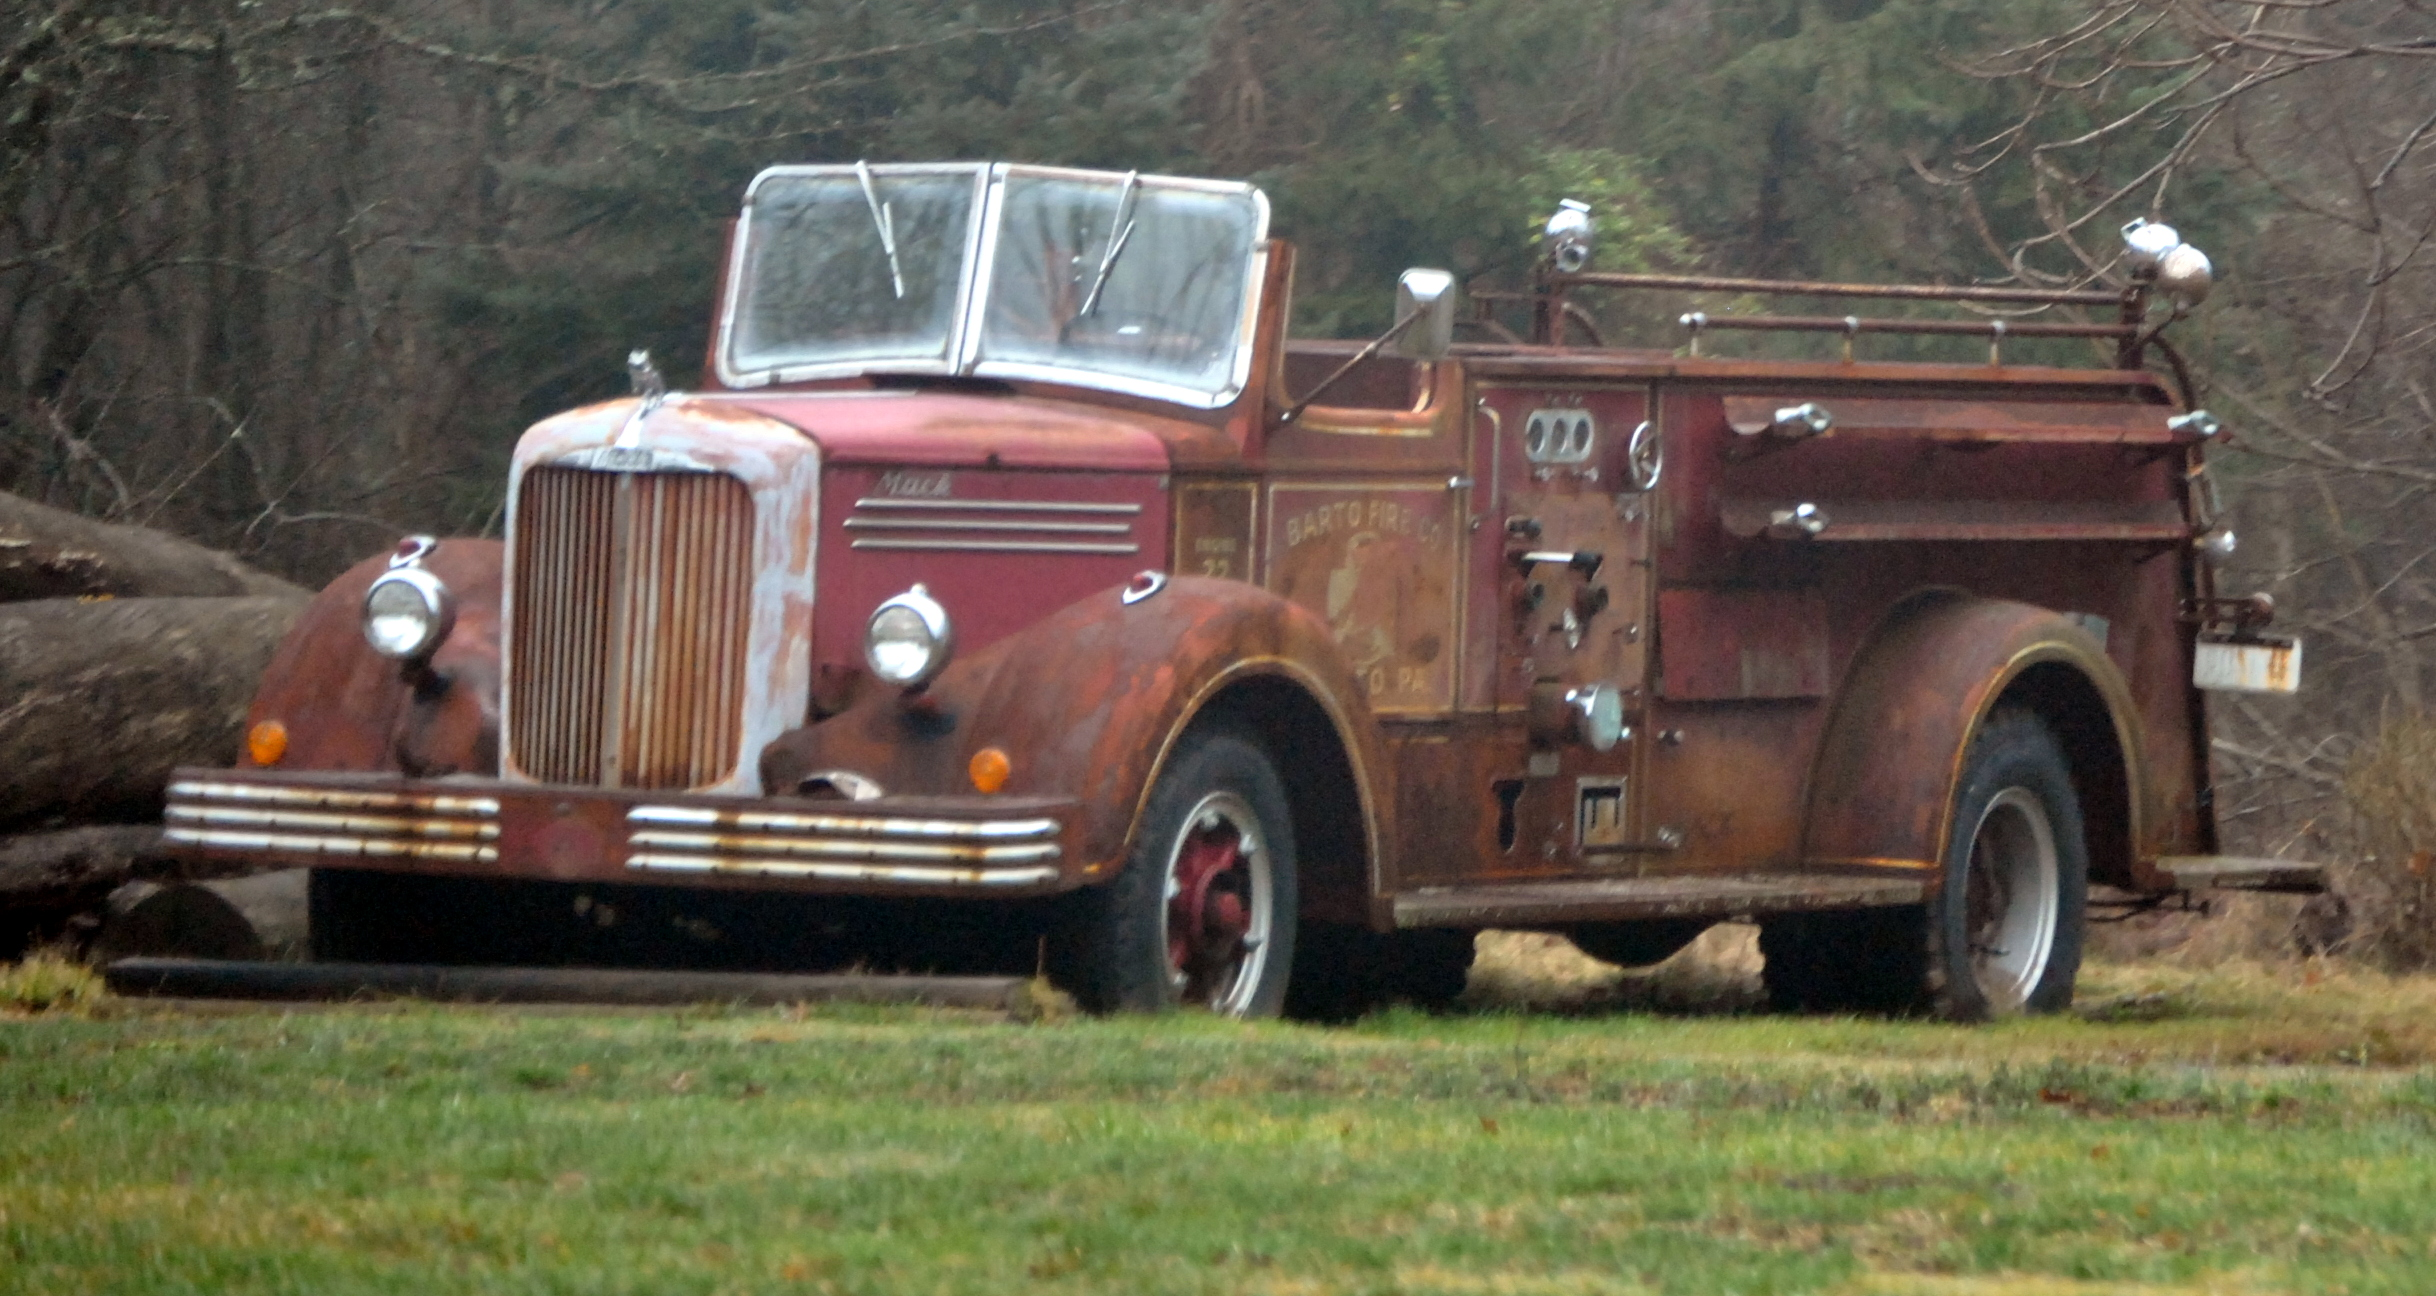 sad old fire truck | chestercountyramblings